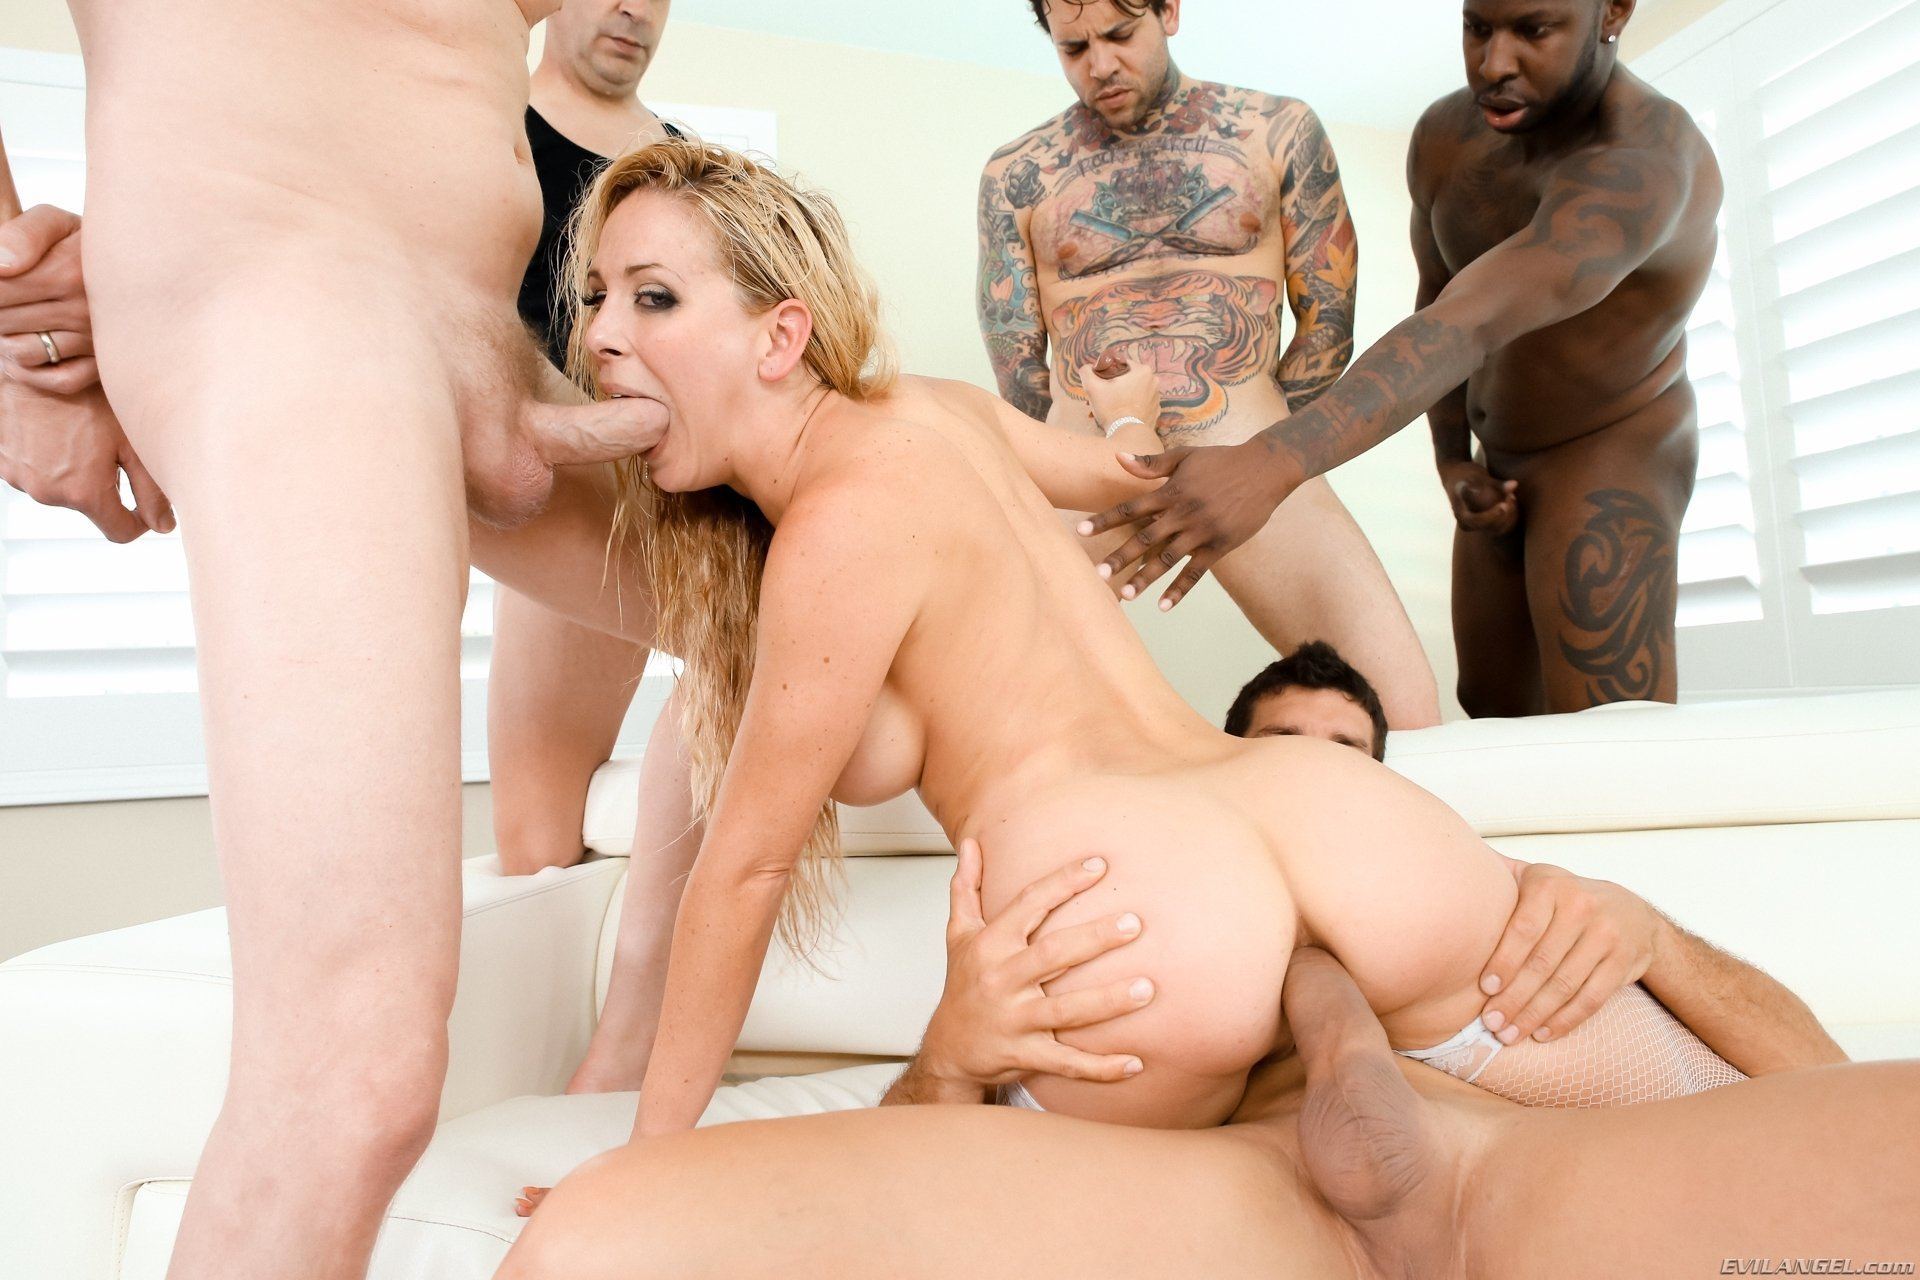 Amateur threesome 2 men and 1 women